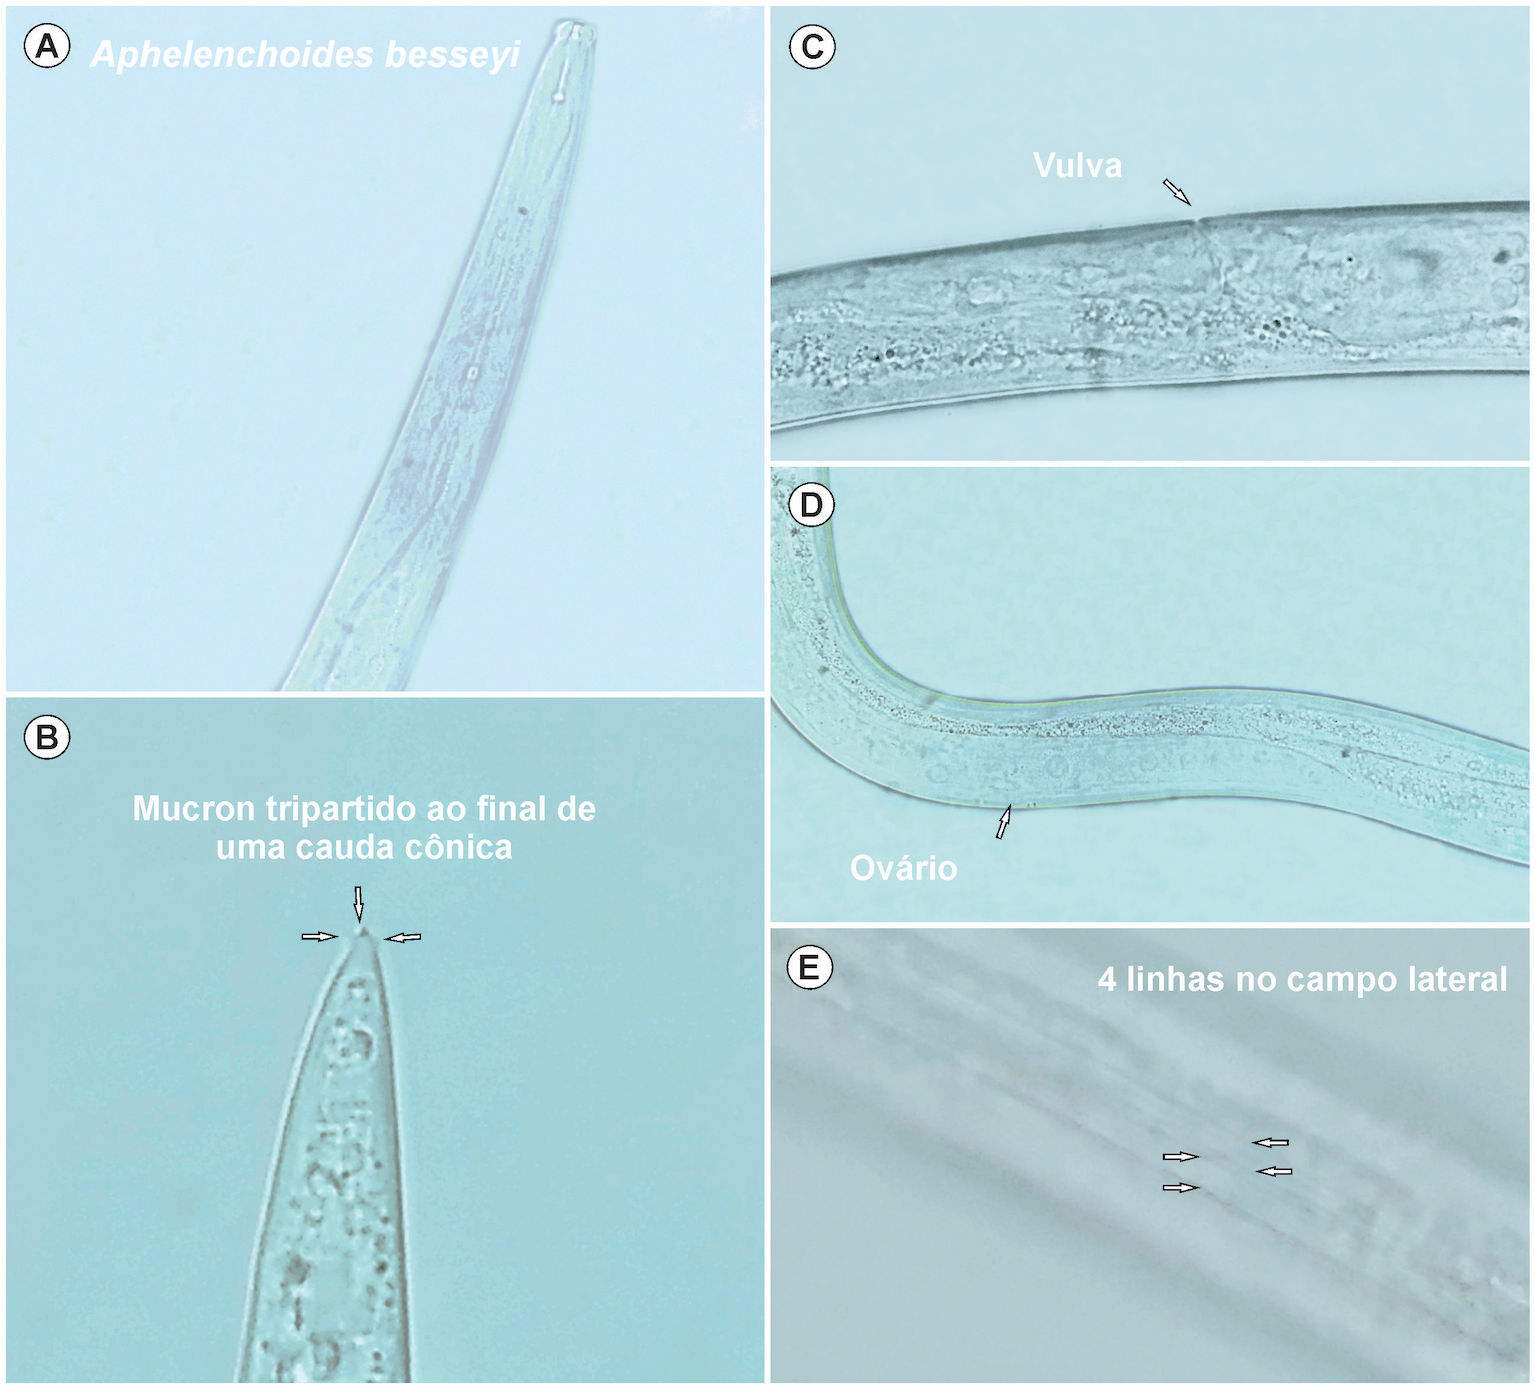 Detection of Aphelenchoides besseyi in Brachiaria seeds